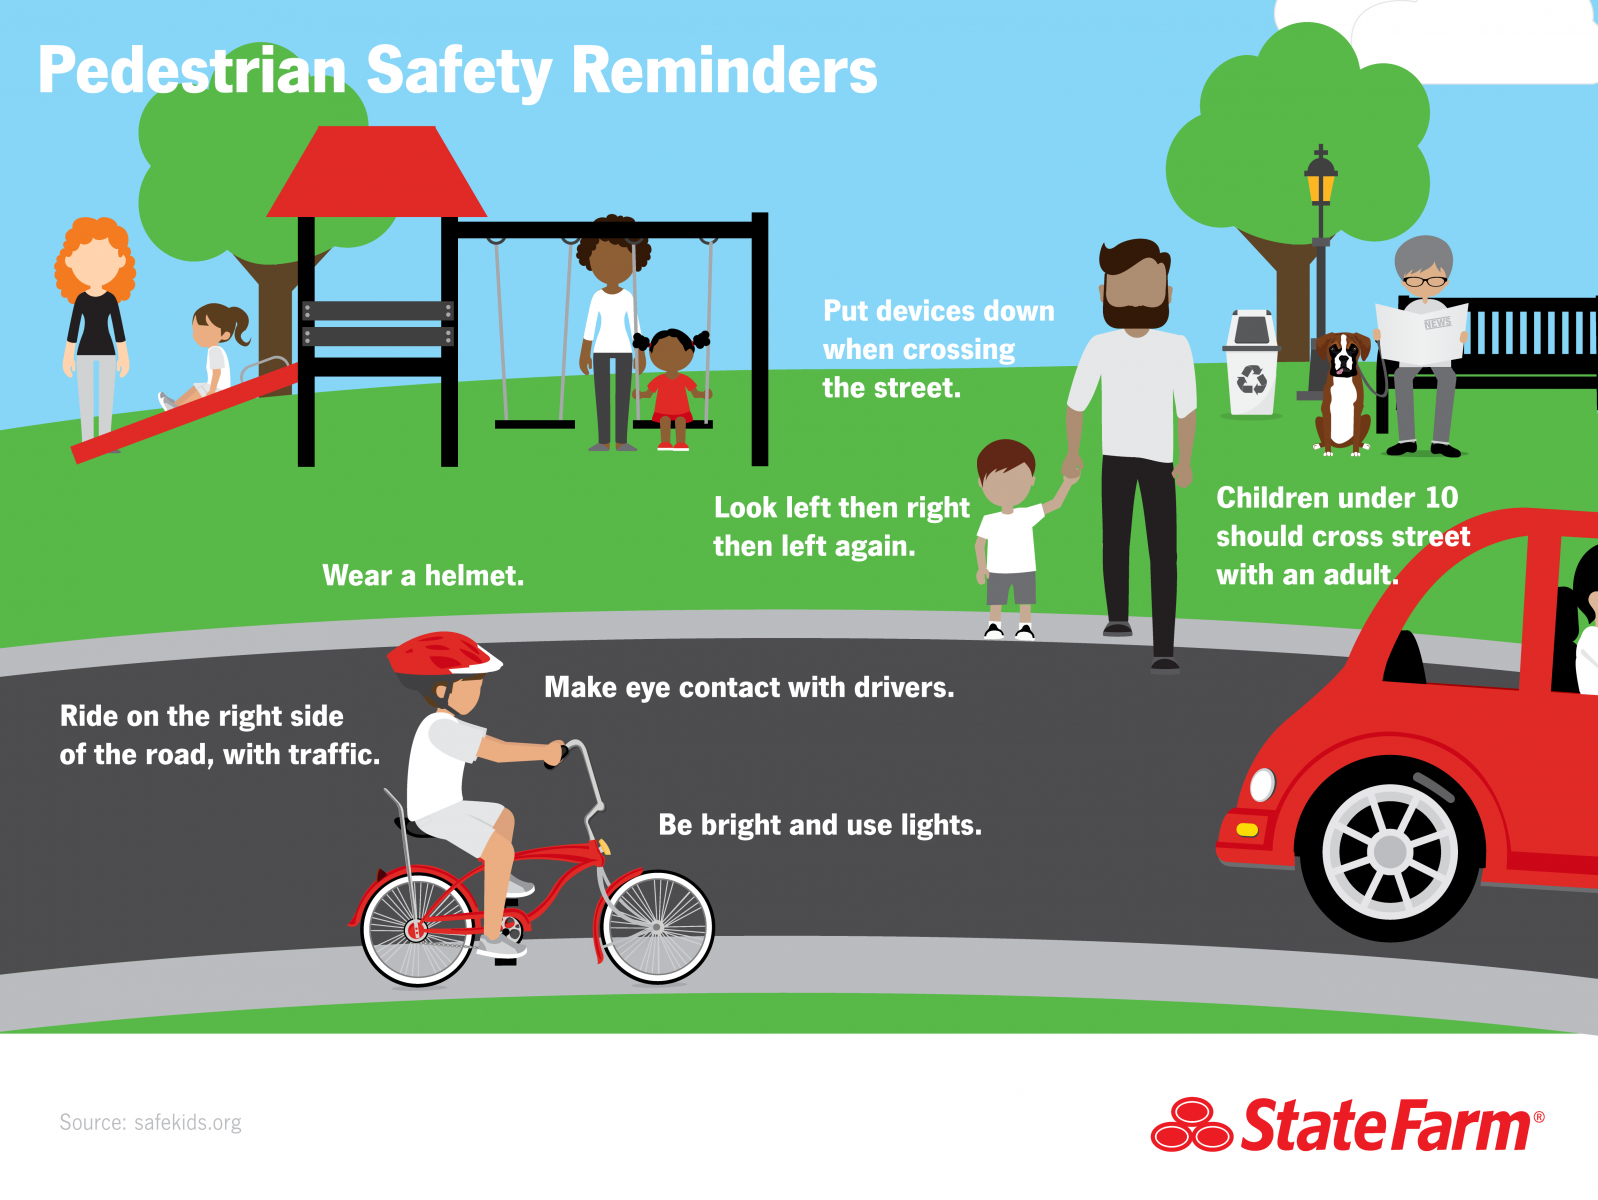 Pedestrian Safety Reminders